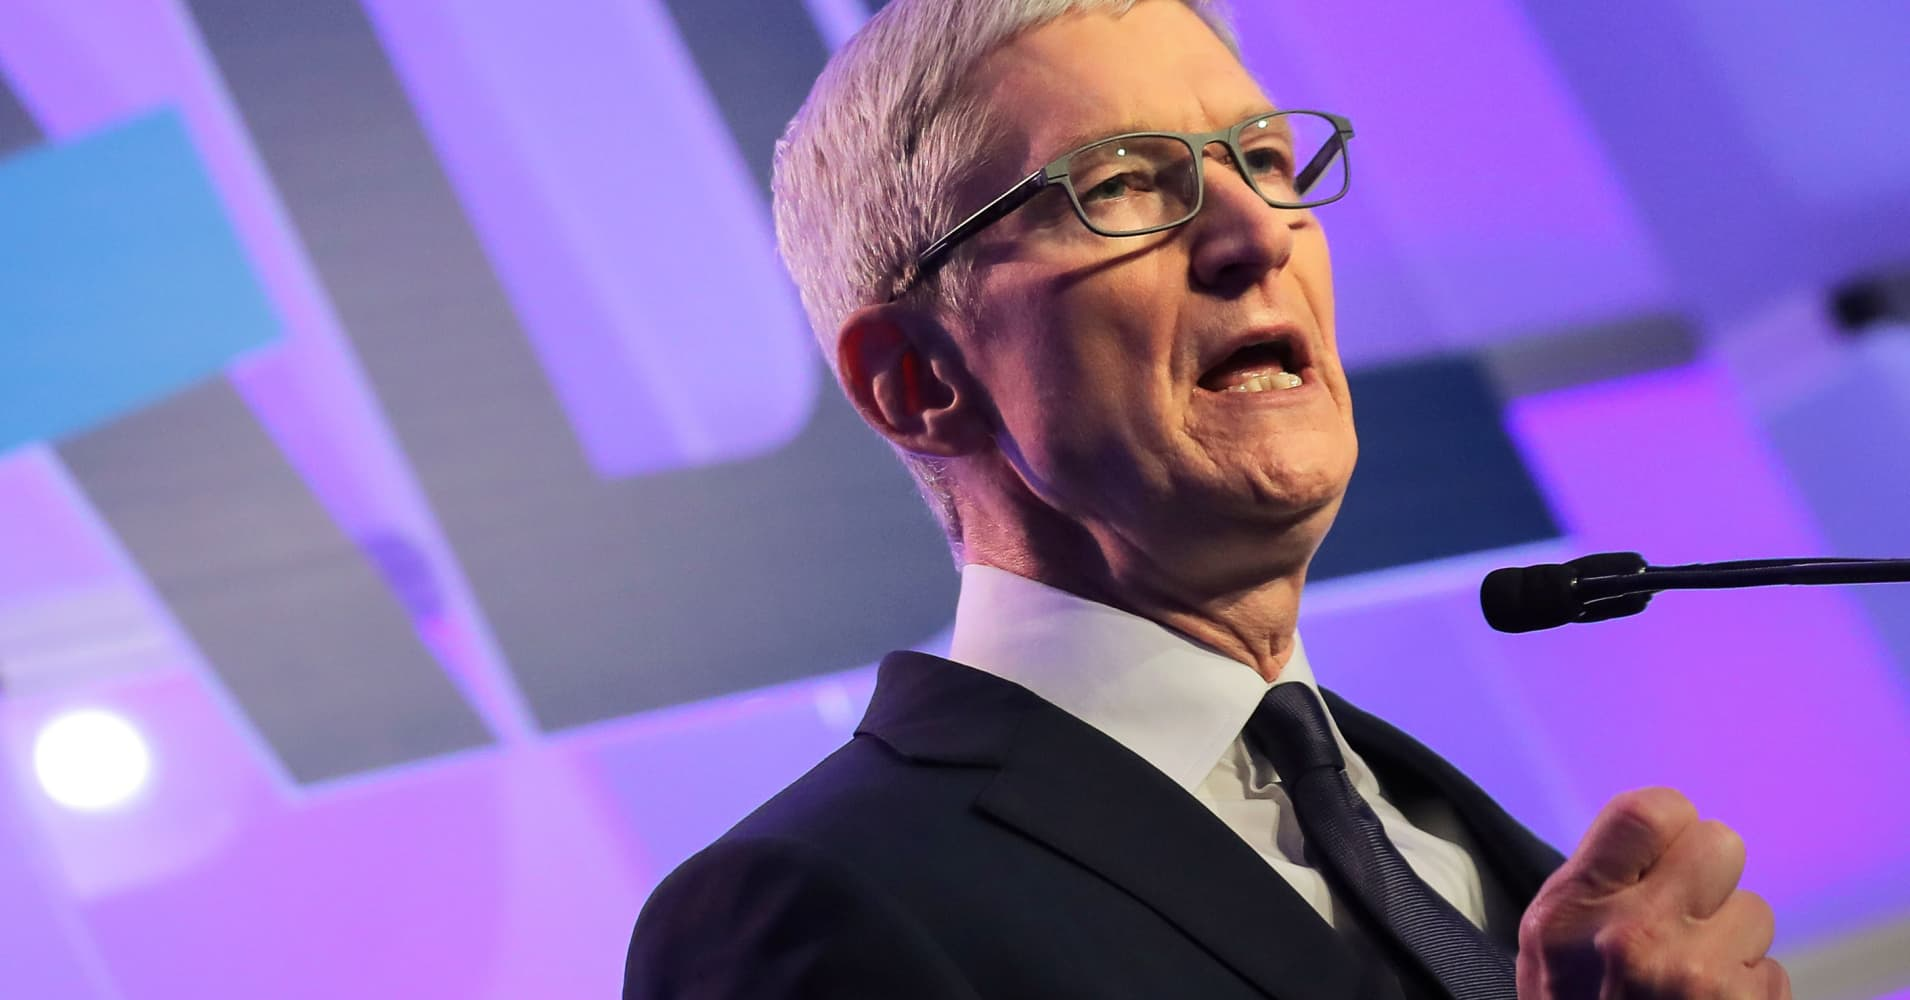 Don't raise the 'white flag' on Apple, this is a 'golden buying opportunity': Analyst